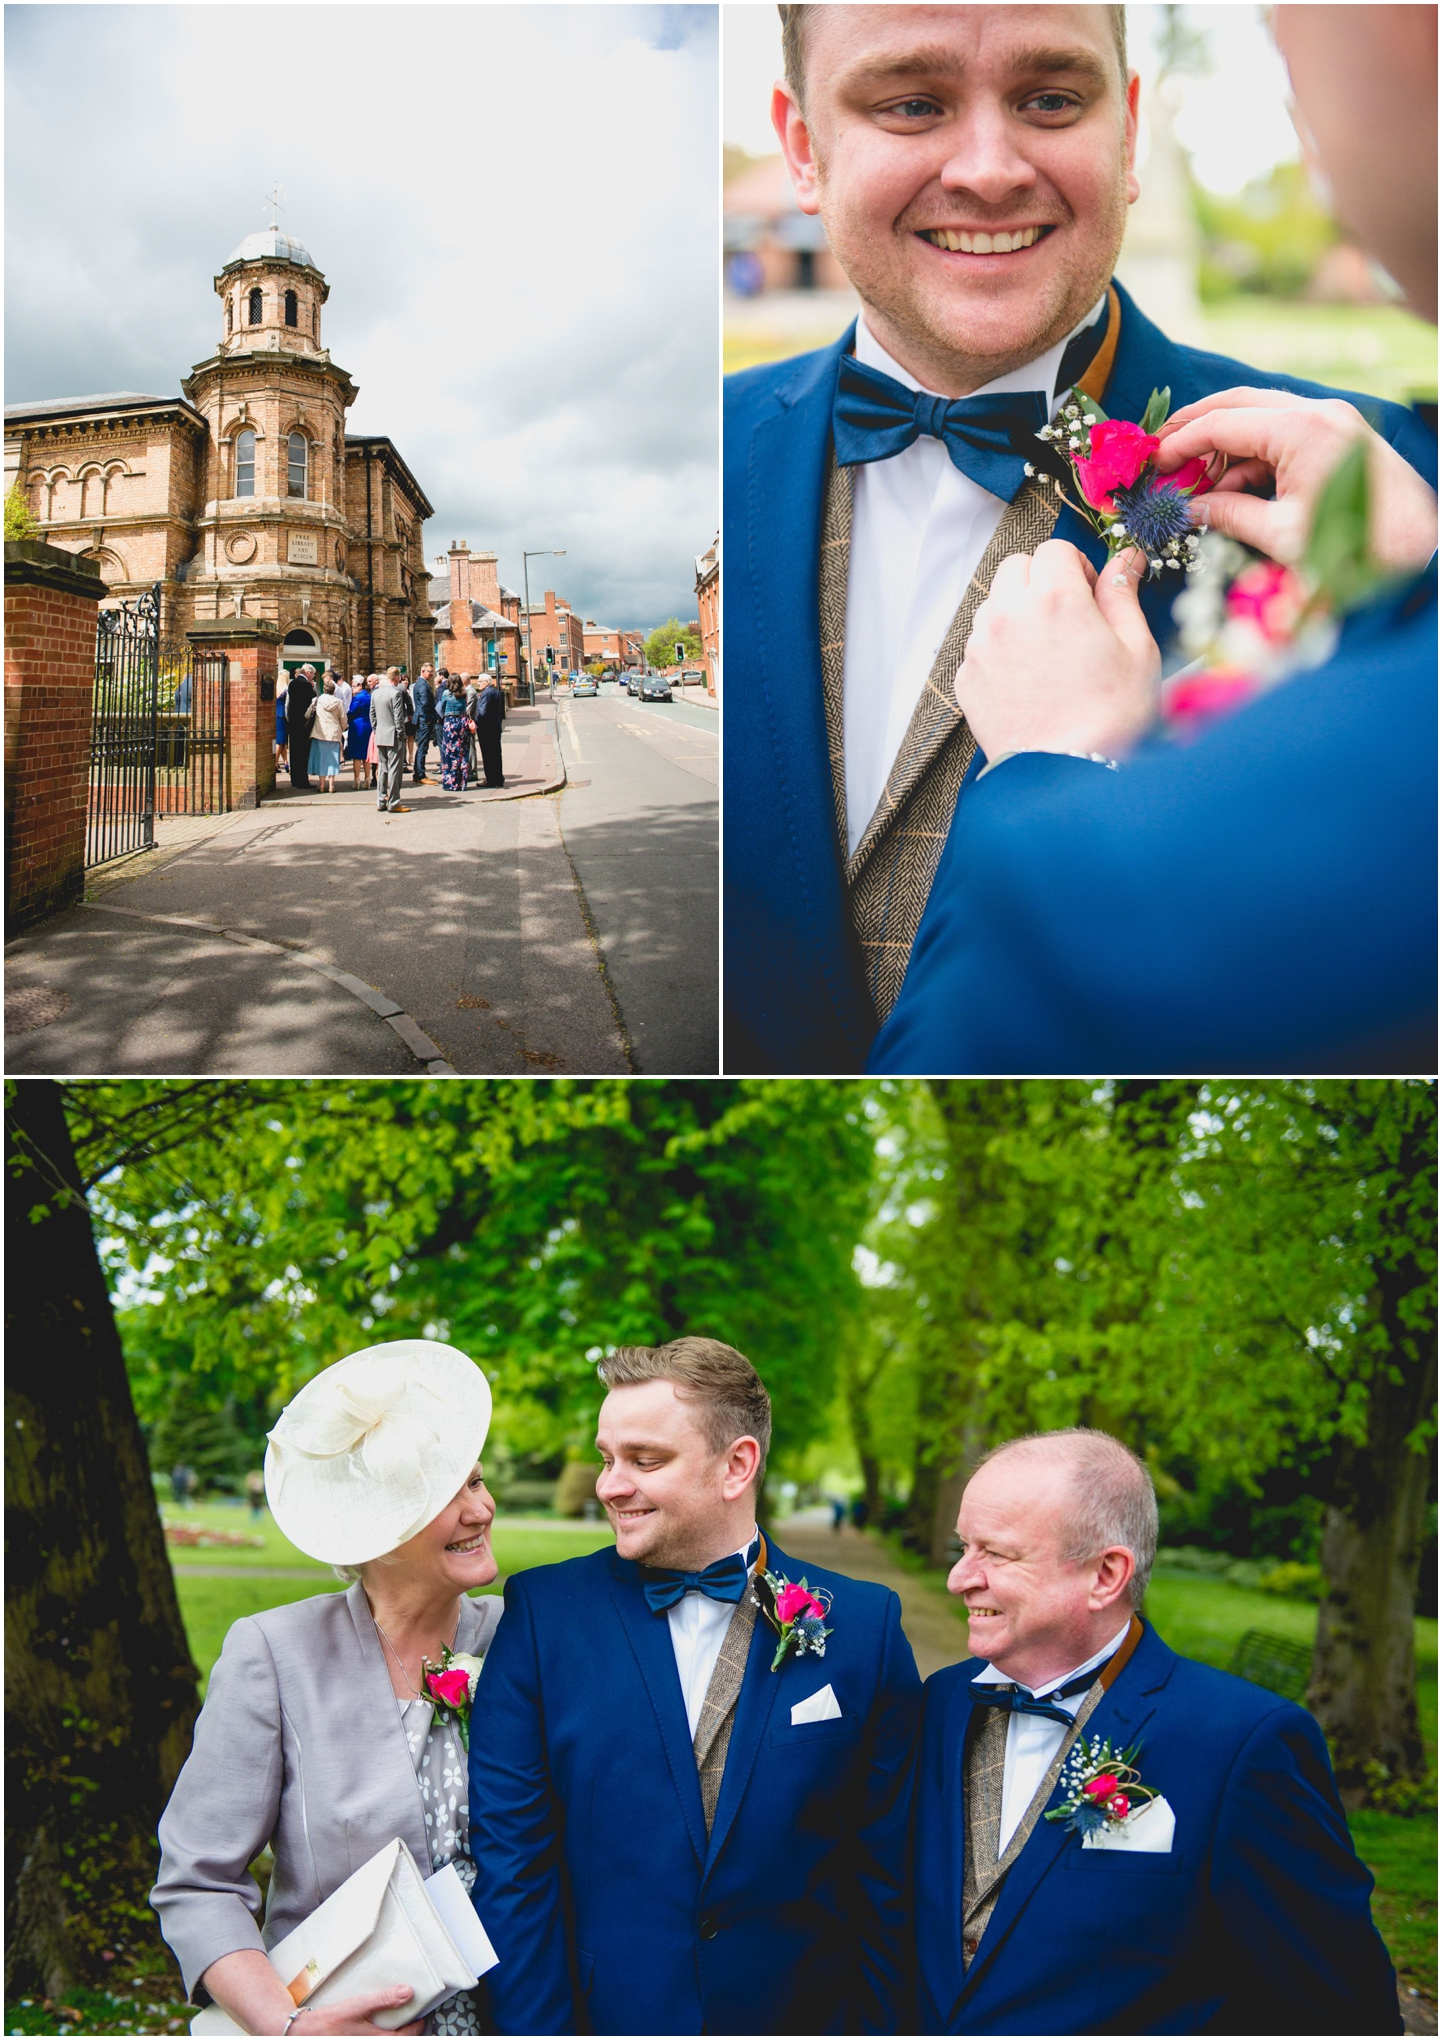 Rugeley Power Station, Wedding, Wedding Photography, West Midlands, photos,Lisa Carpenter Photography, Lichfield Registry Ofice, Peter and Eve, Subway, Power Station, Chimneys, Campervan, VW,  groom, boutonierre